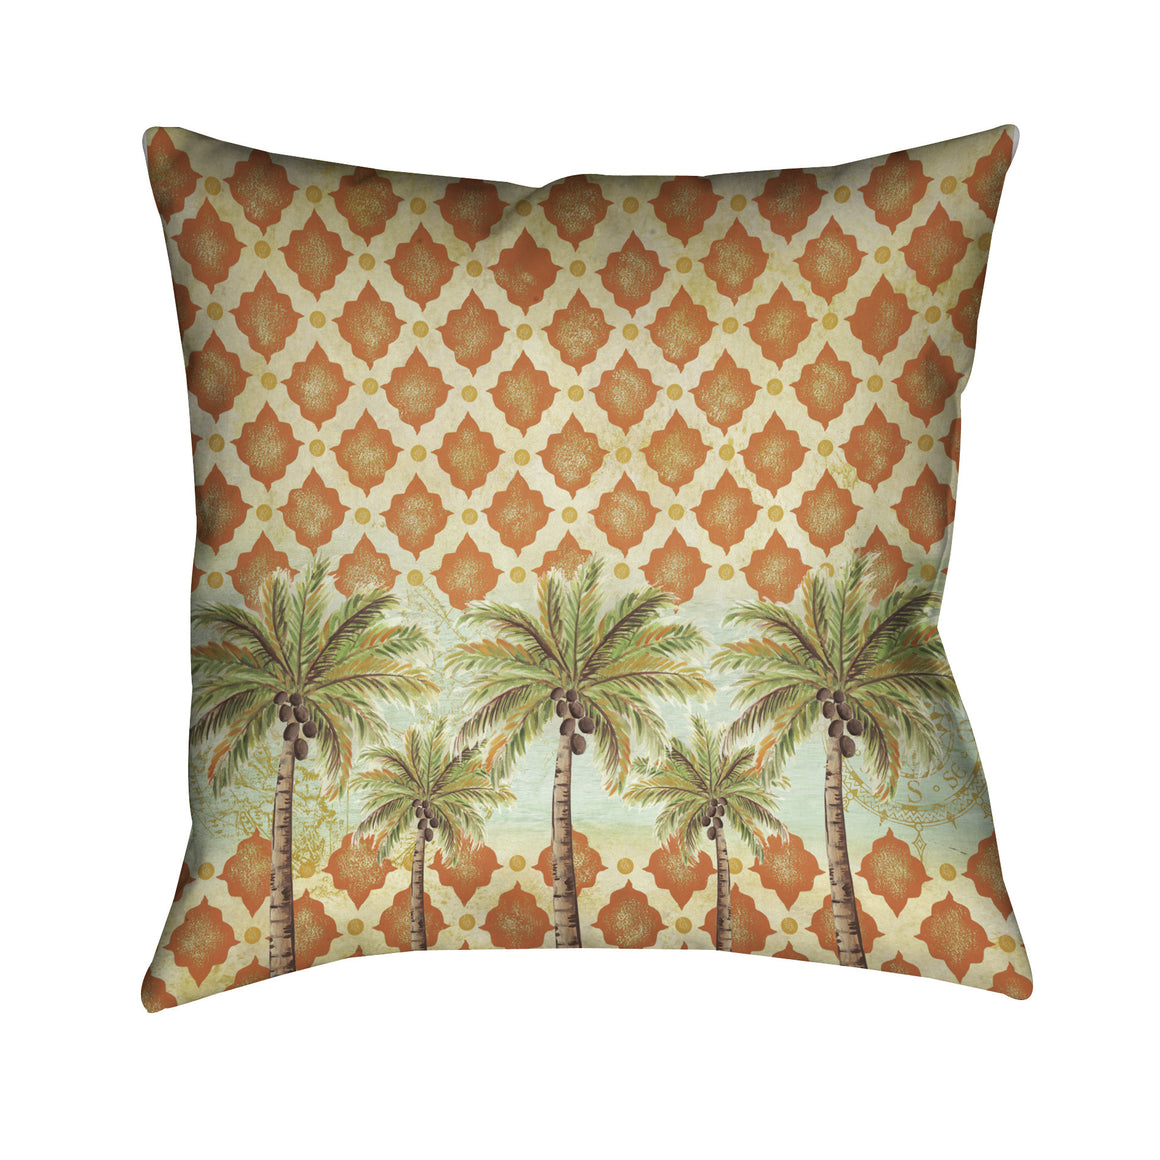 Spice Palm Outdoor Decorative Pillow